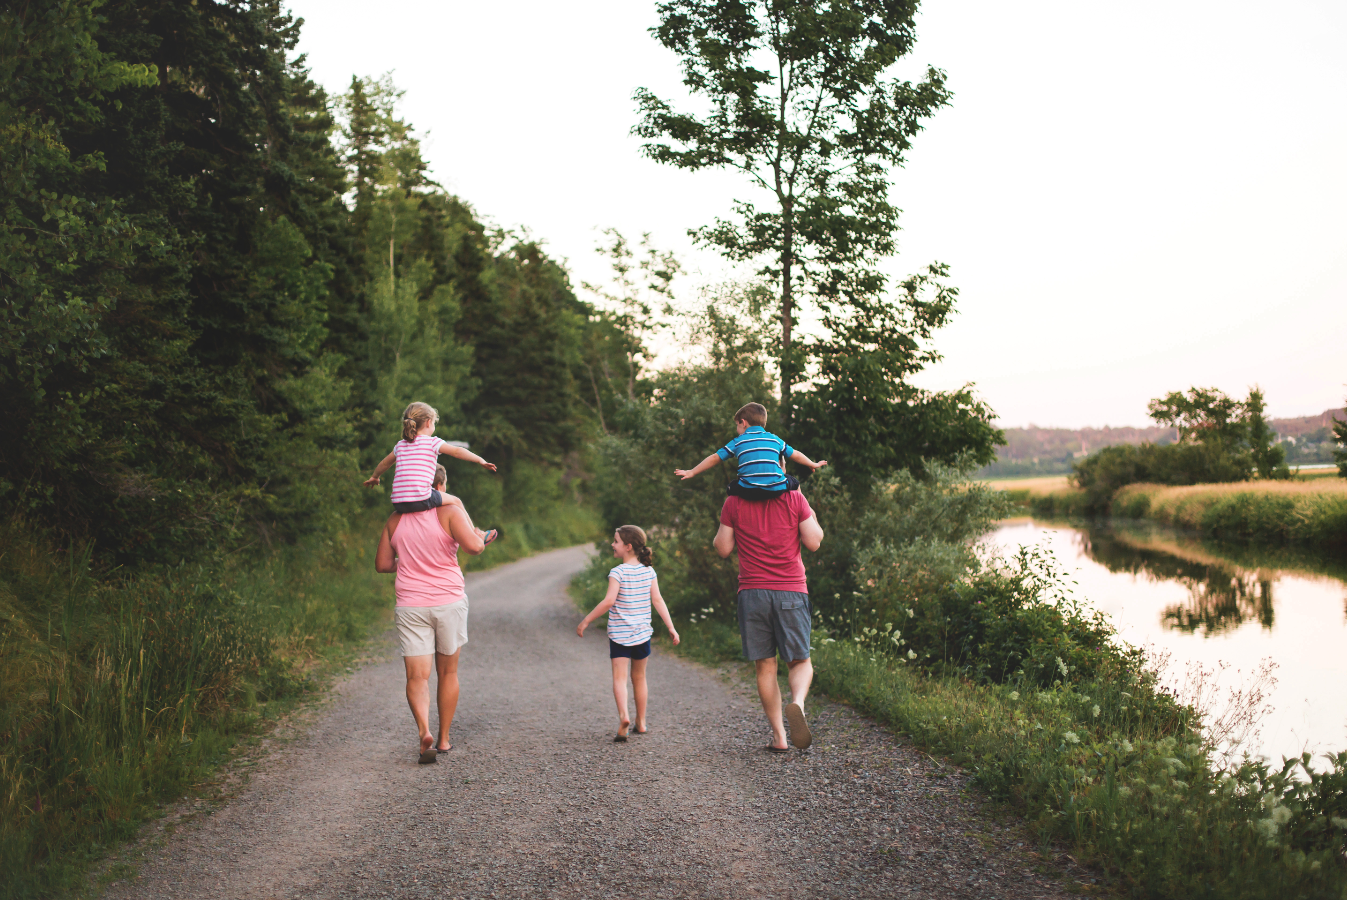 Hamilton-Toronto-Burlington-Oakville-welland-Niagara-Cambridge-Dundas-Ontario-Family-photographer-photography-Moments-by-Lauren-Nova-Scotia-Antigonish-Lifestyle-Session-Image-Photo-13.png